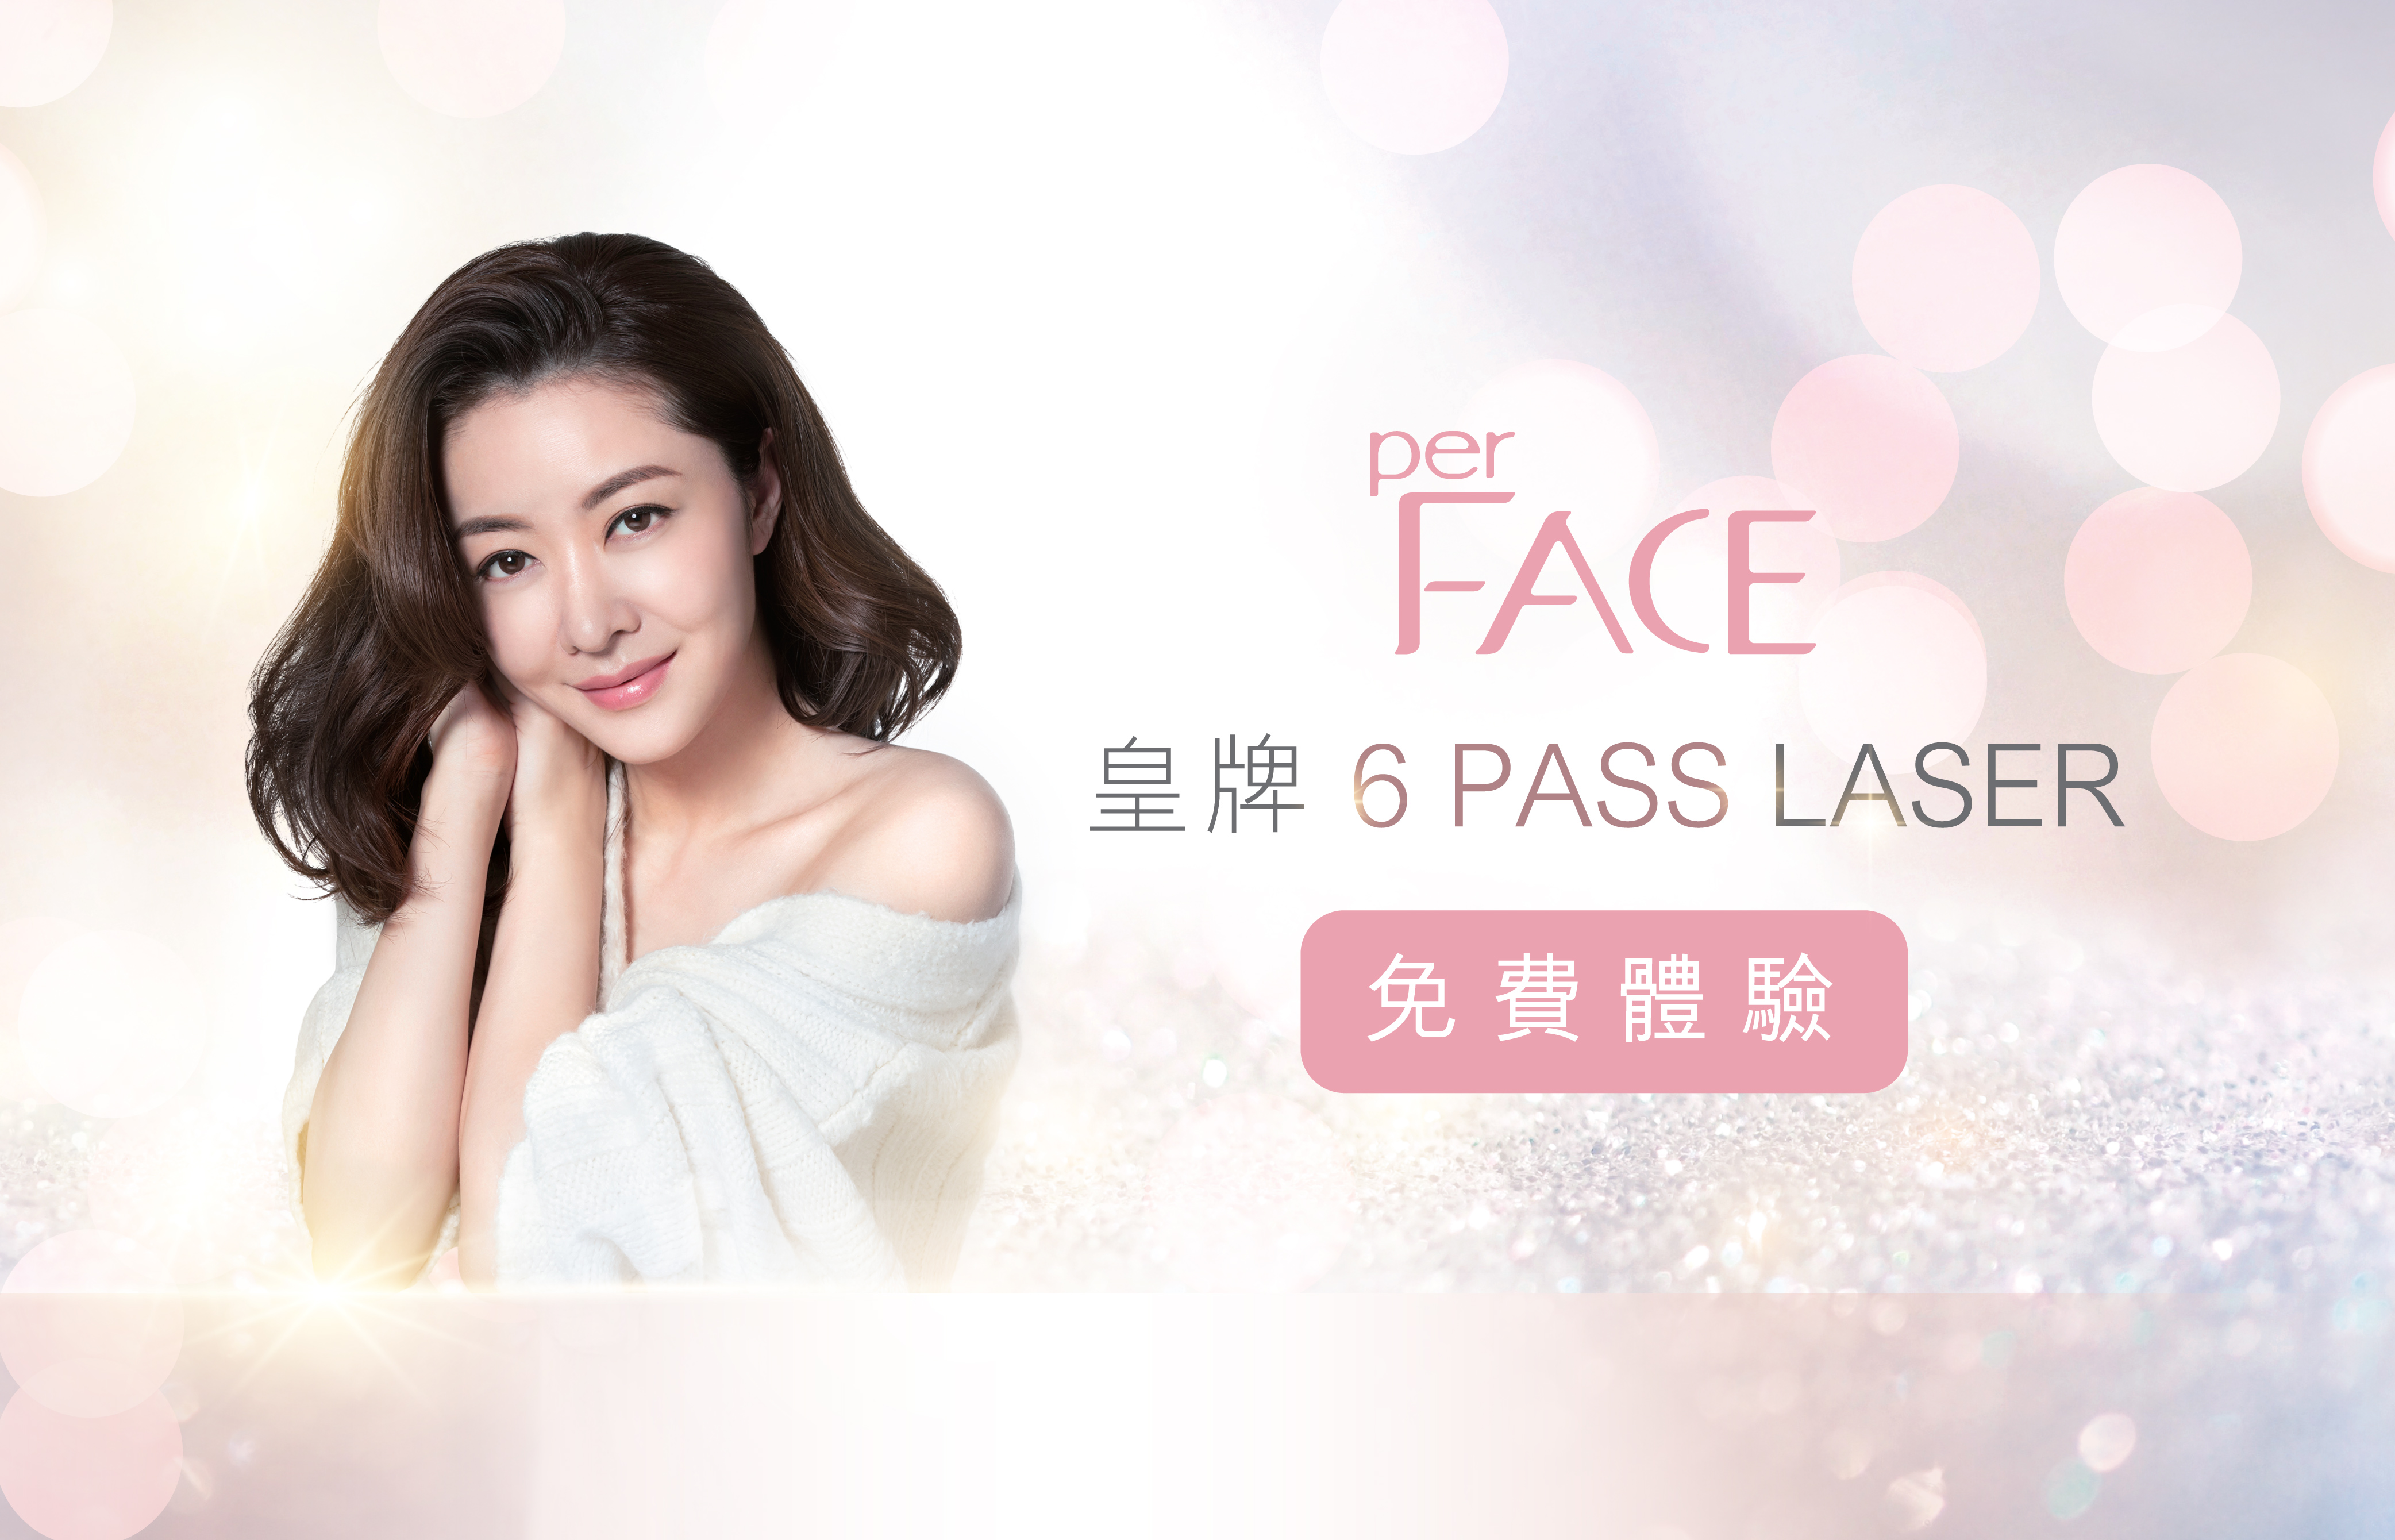 perFACE : 免費體驗皇牌 6 Pass Laser...